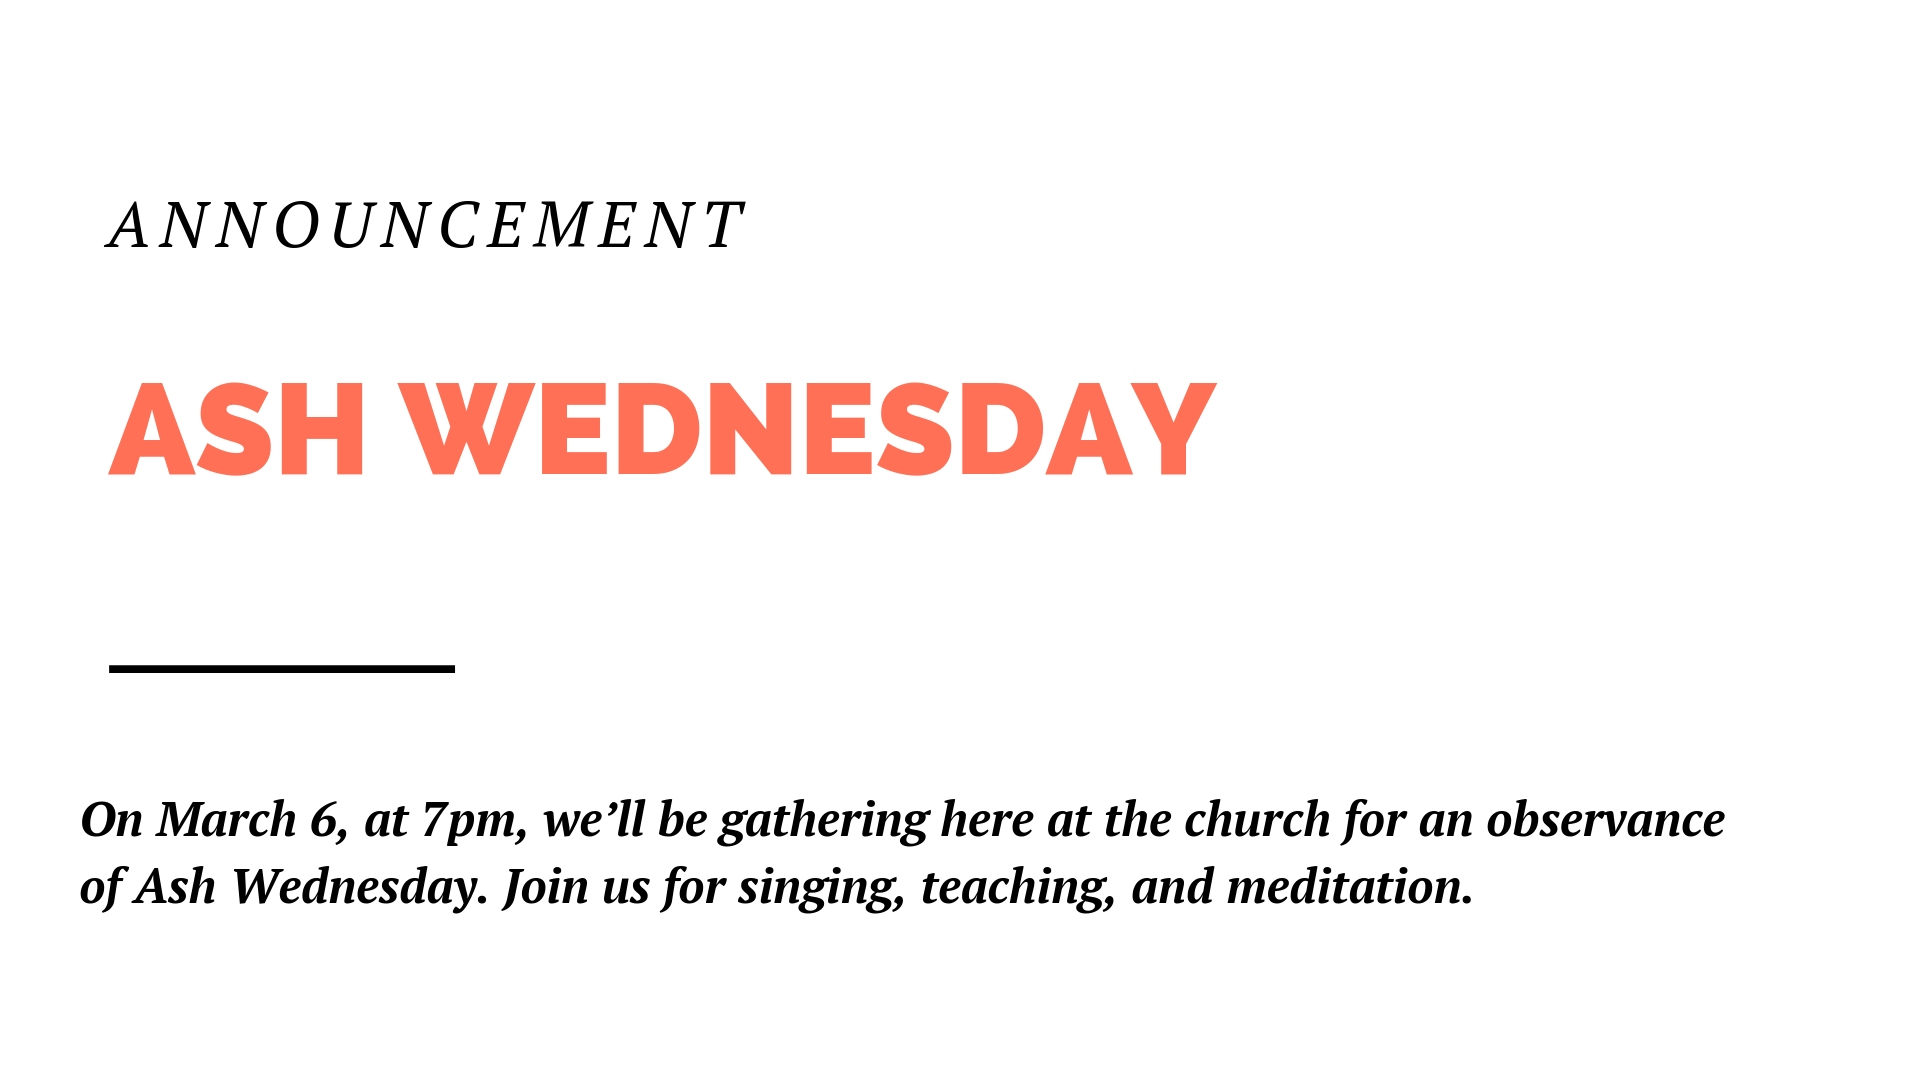 On March 6, at 7pm, we'll be gathering here at the church for an observance of Ash Wednesday, which begins the season of Lent. Join us for singing, teaching, and meditation as we enter into this important time on the church calendar.